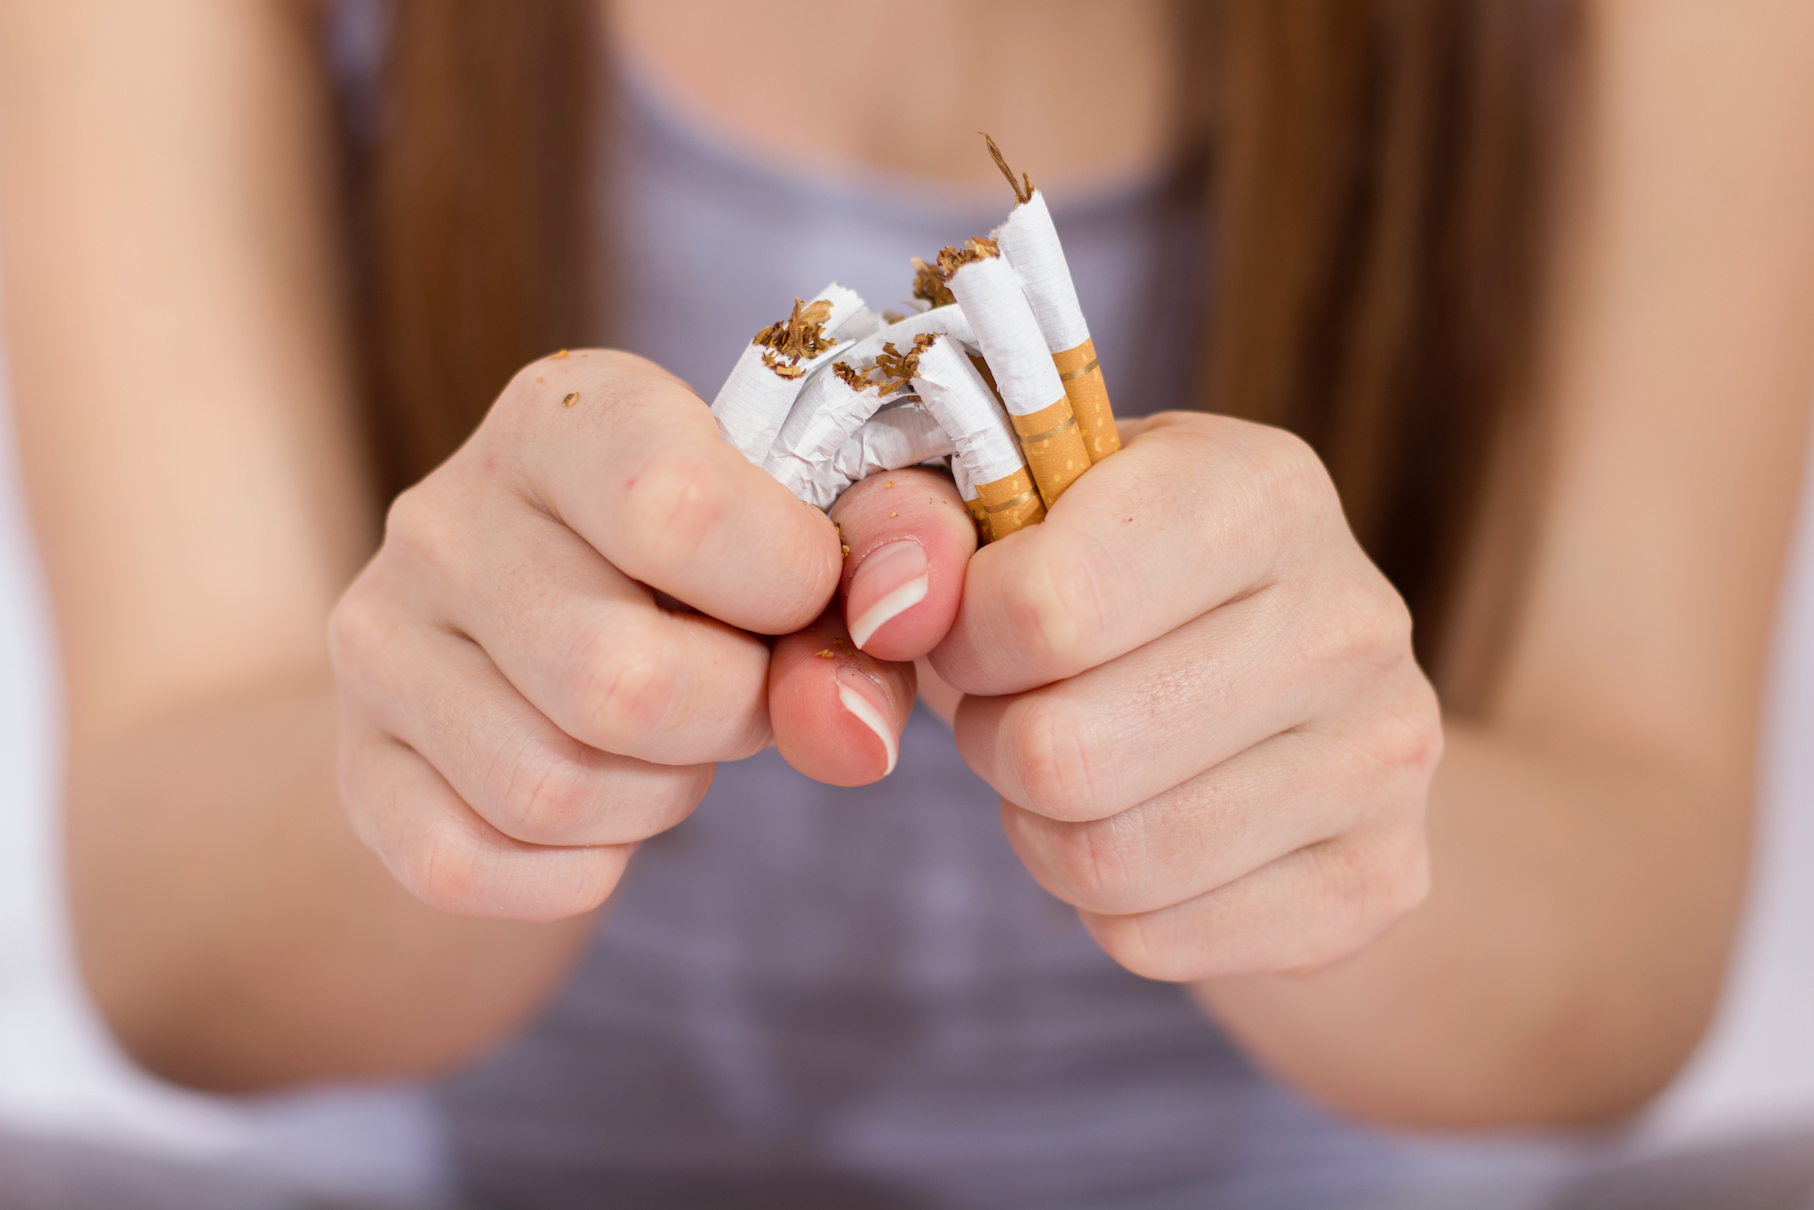 A recent study may have uncovered certain genetic factors that explain why smoking is so difficult to quit.